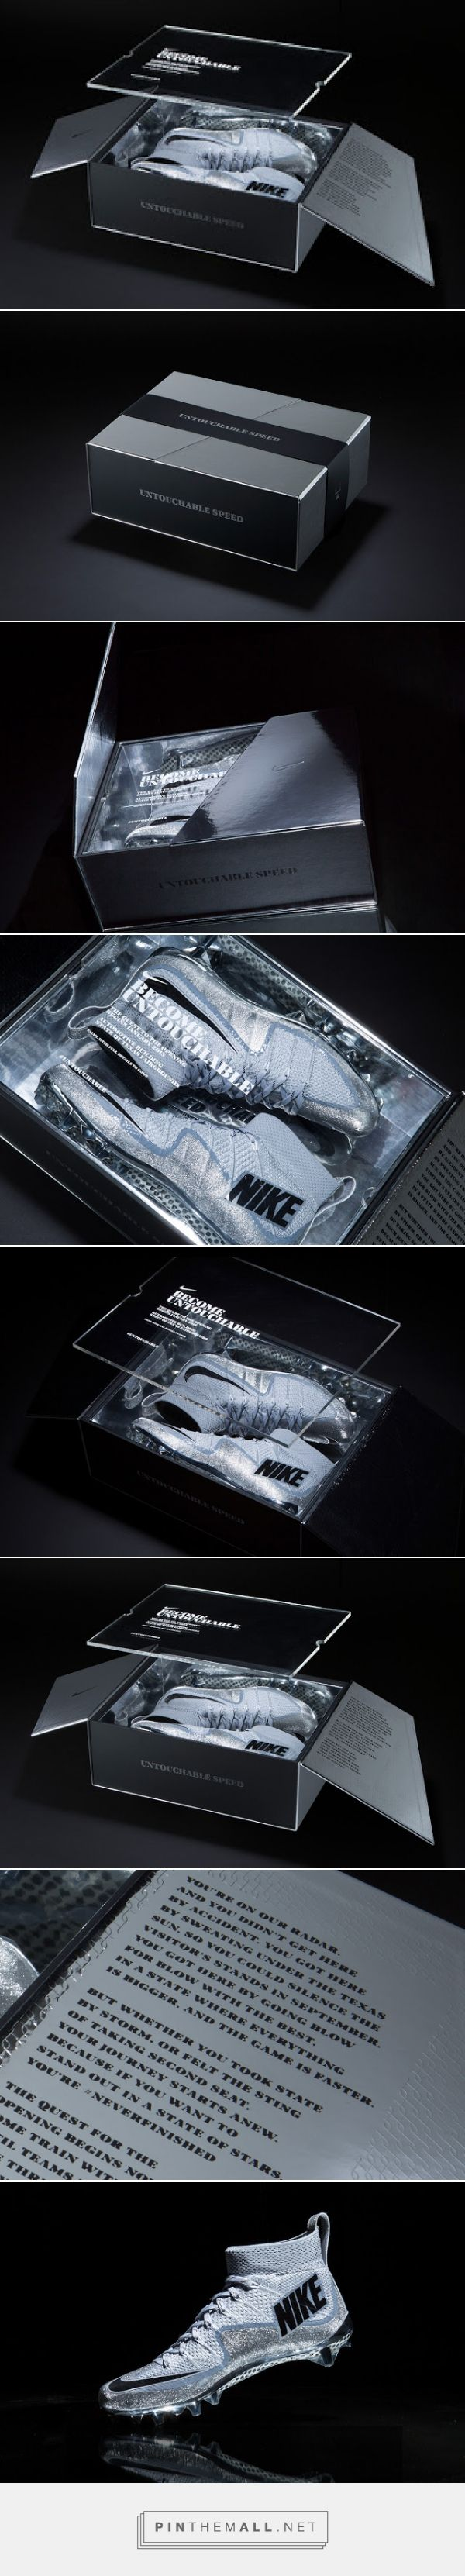 Nike Football asked us to create a limited package for their most advanced cleat, the Vapor Untouchable. The package was sent to Texas' top sixteen high school teams as an invitation to an exclusive event. The package is secured with a belly band, and the two angular flaps are secured together with hidden magnets. An acrylic panel with a screen printed invitation to the event covers the metallic silver cleats.